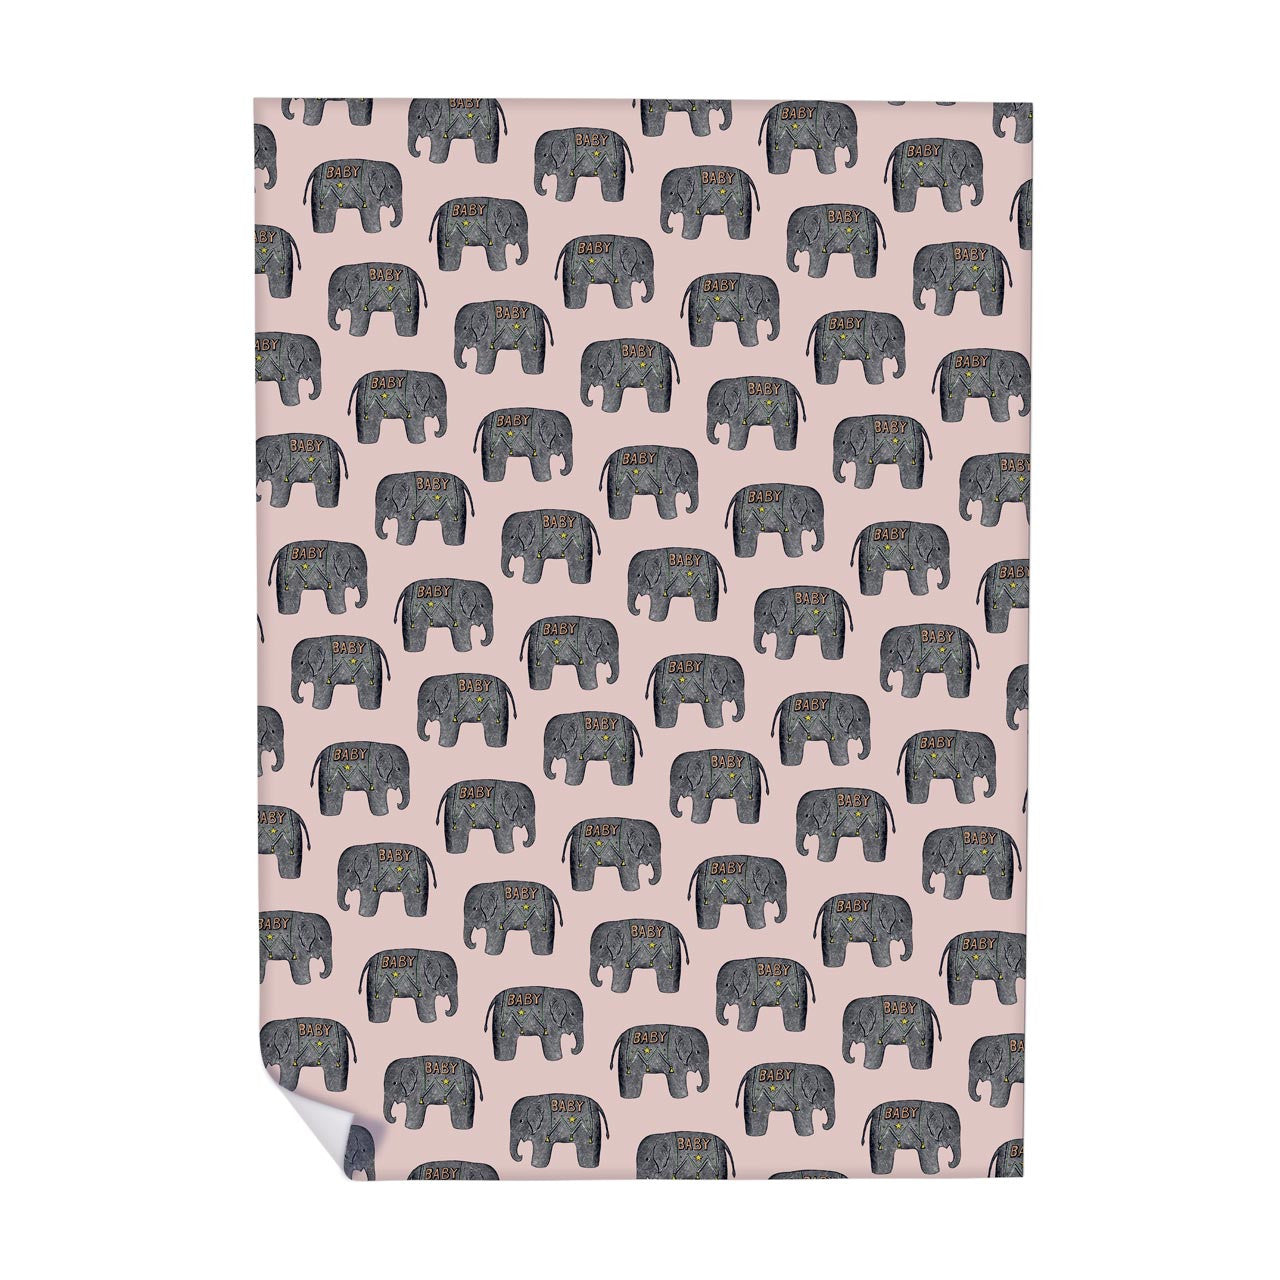 Baby Elephant (Pink) Wrapping Paper (ROLL OF 25)